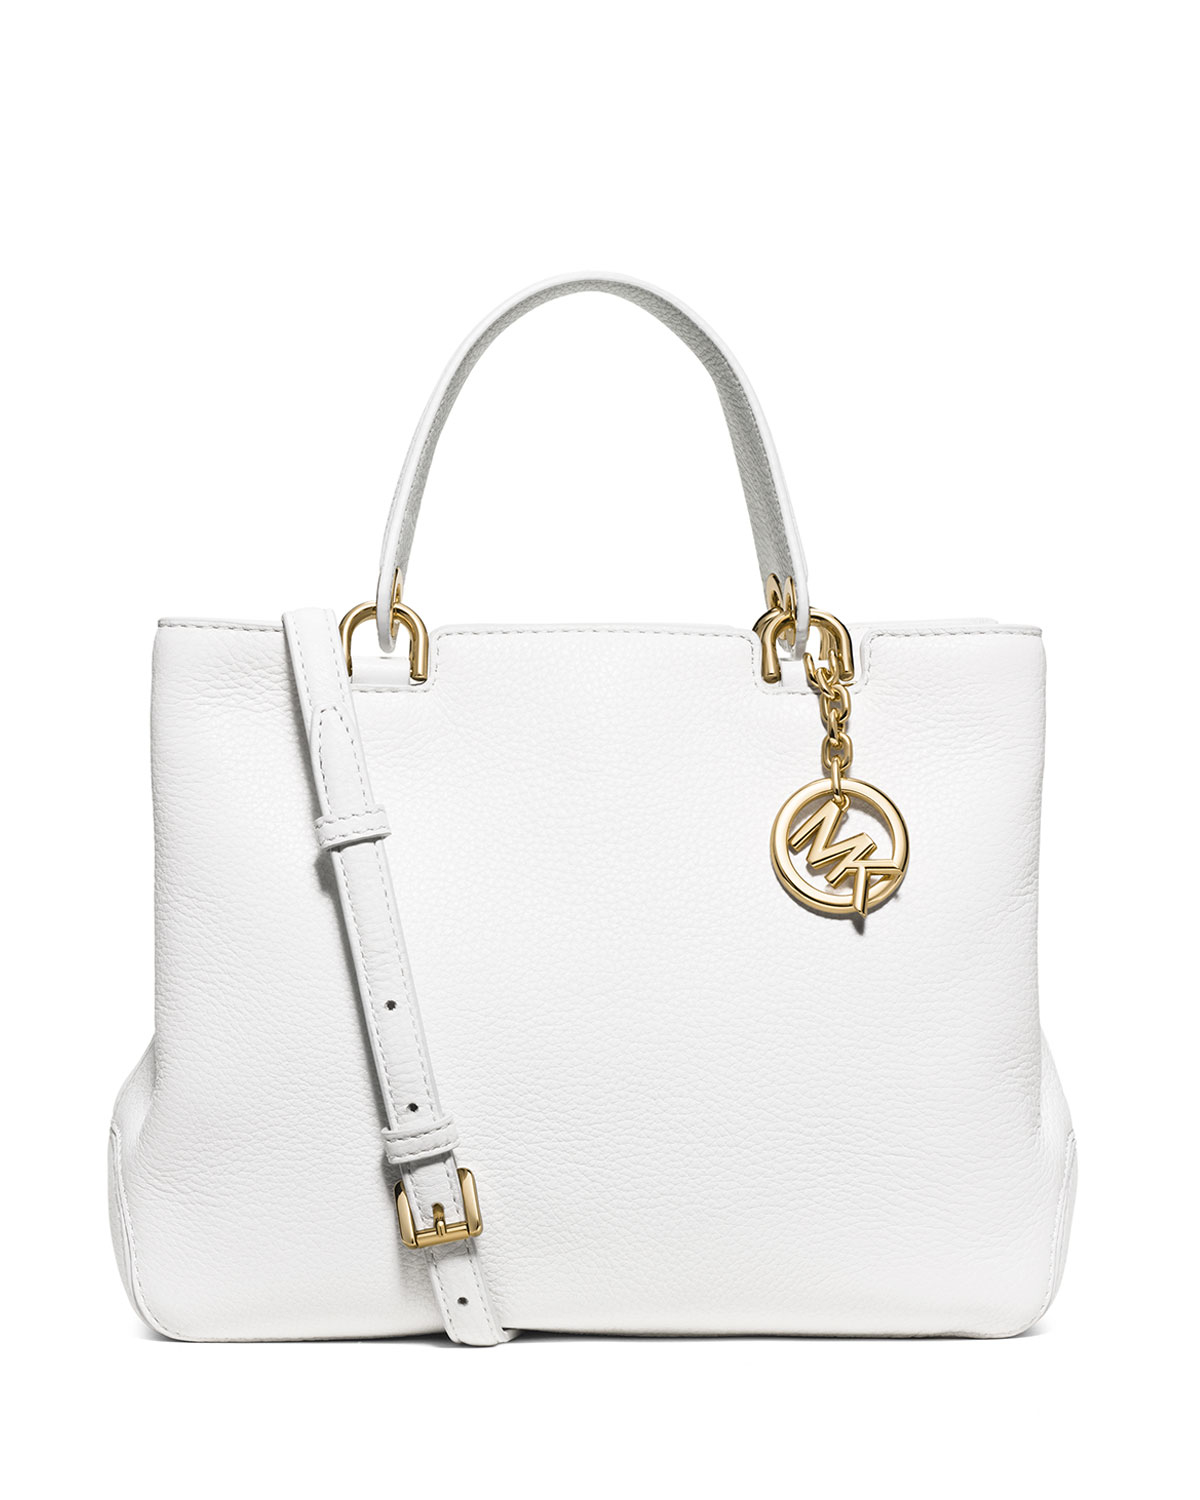 ade7d1762a3a0d MICHAEL Michael Kors Anabelle Medium Top-zip Tote Bag in White - Lyst